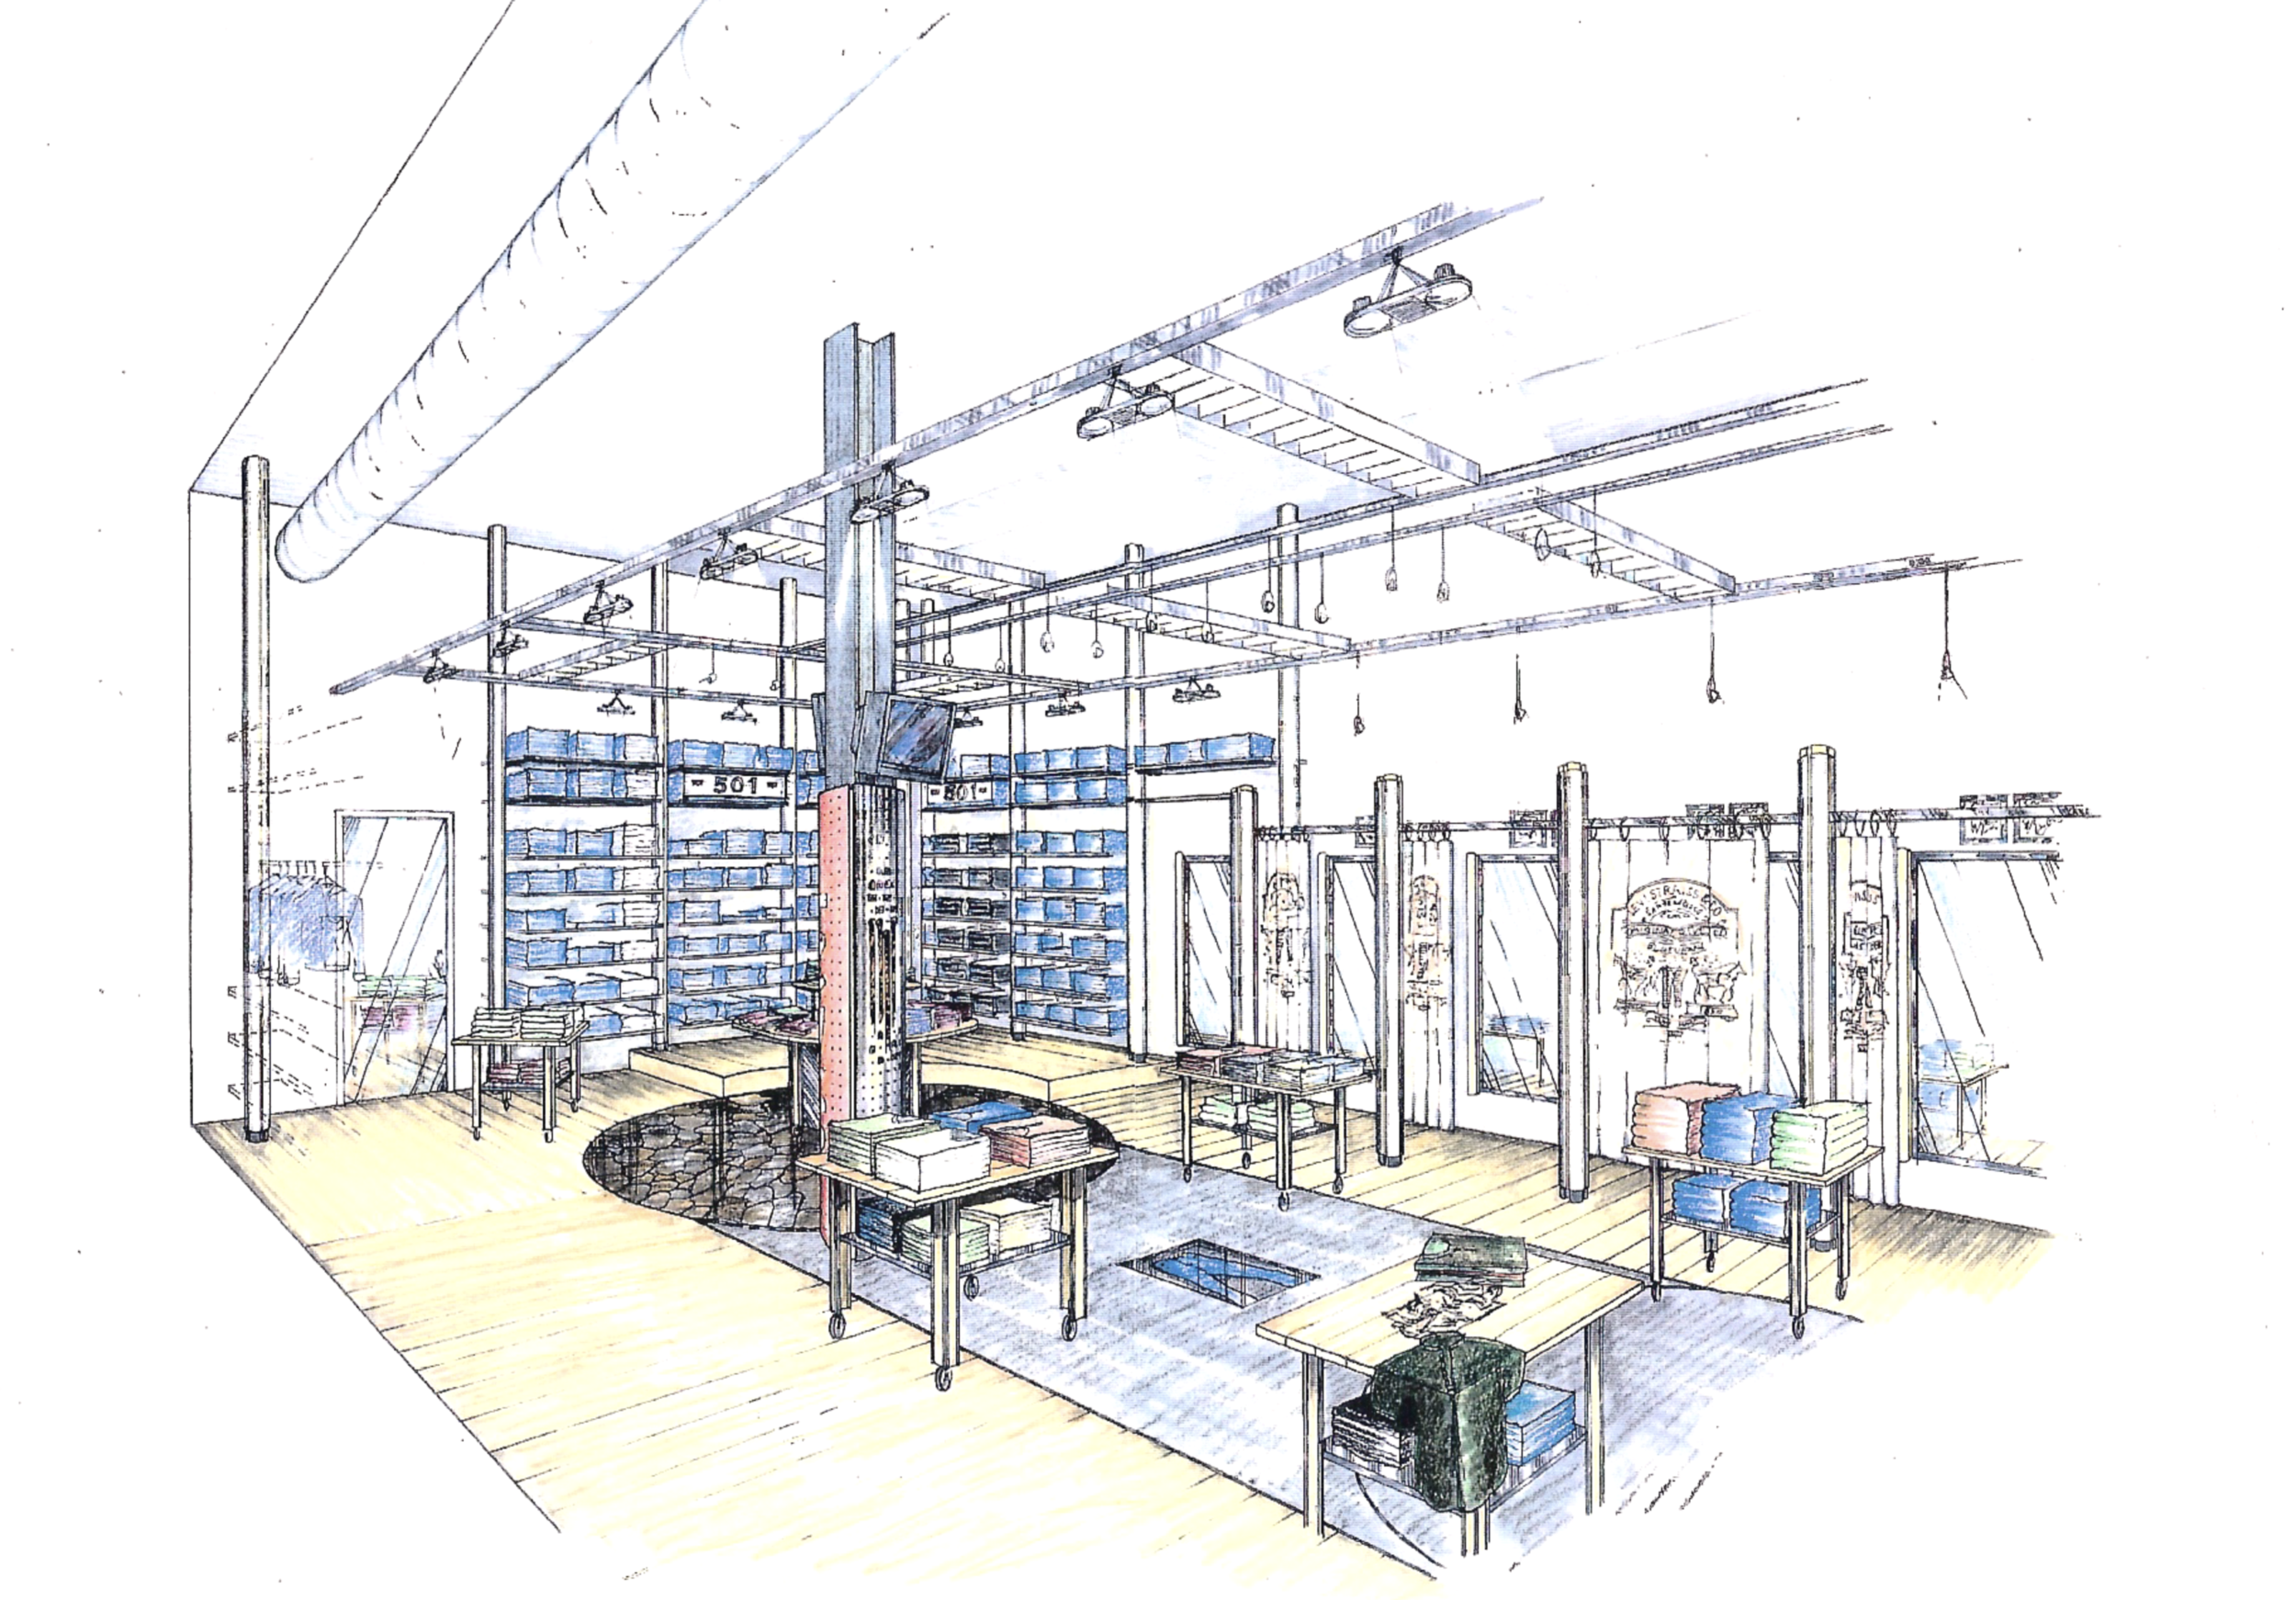 Concept rendering for Nordic Levi's Stores re-building